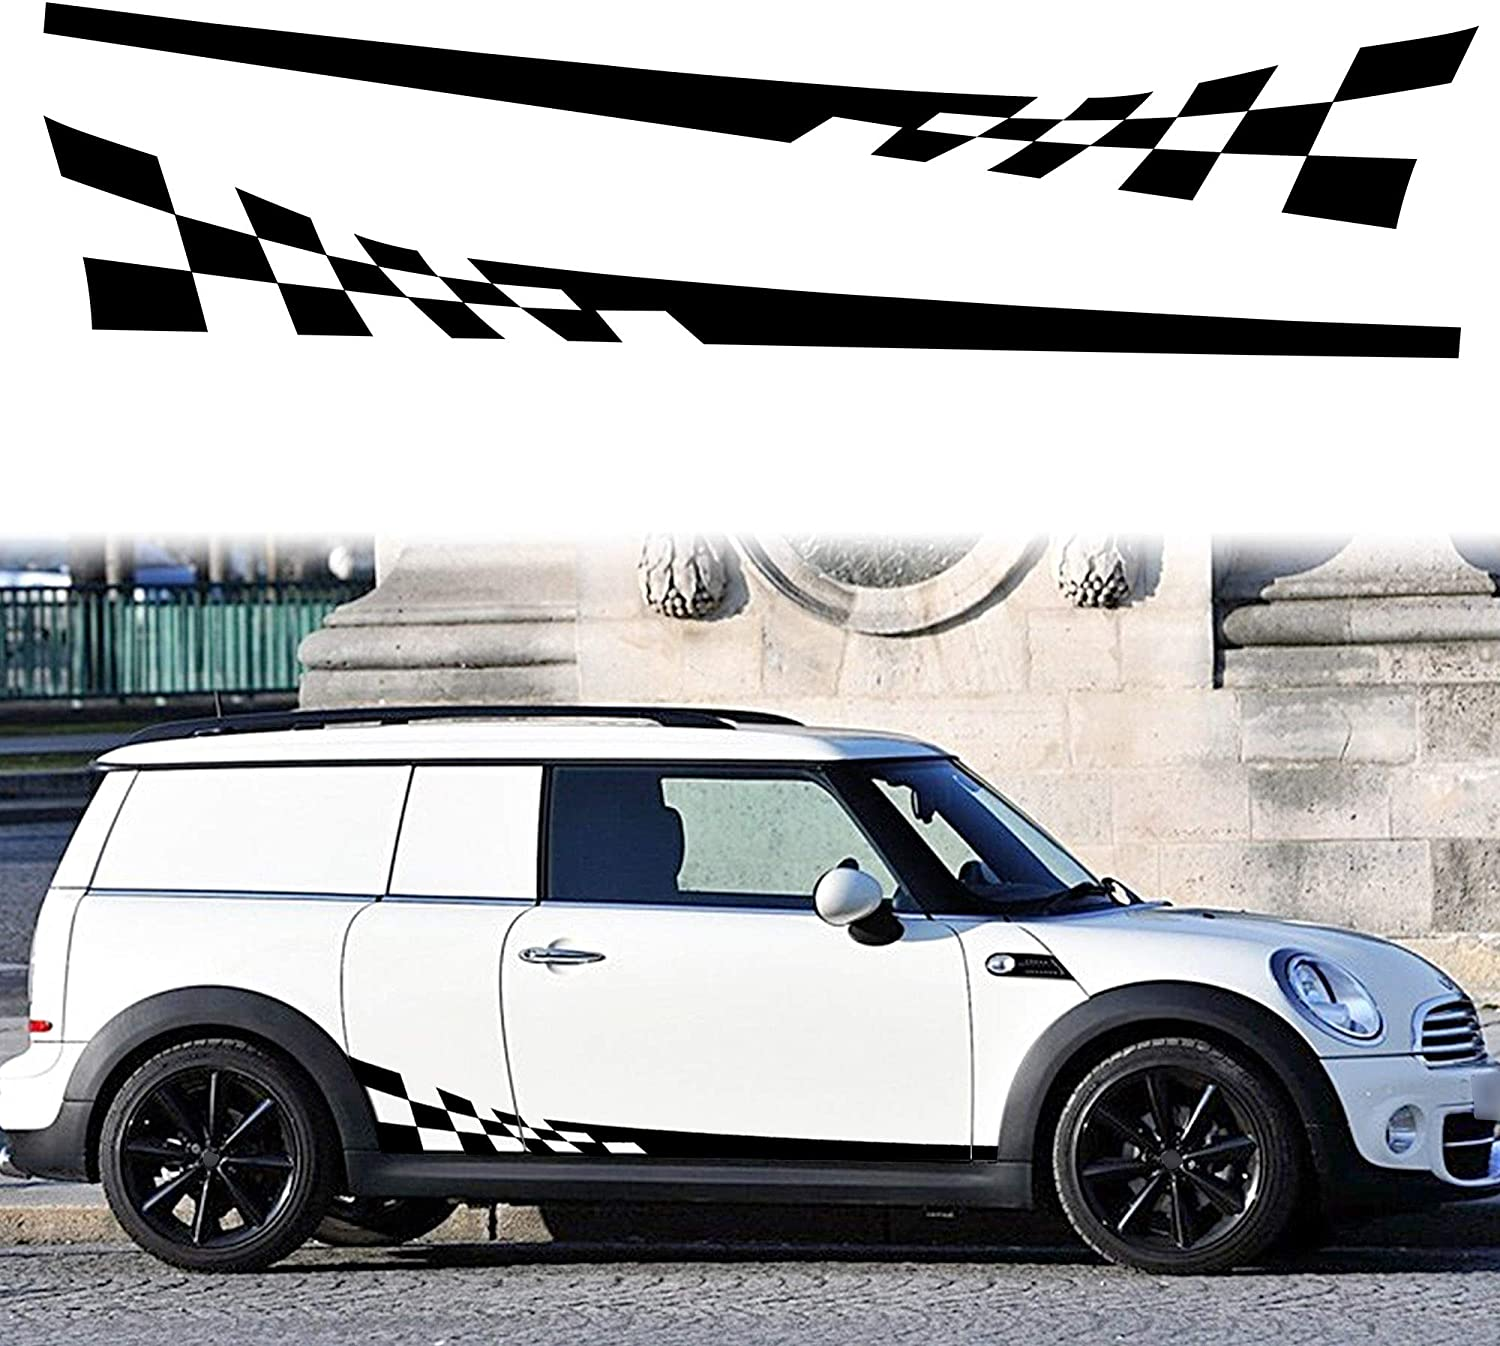 TOMALL 1 Pair 77.2 Racing Checkered Flag Side Stripe Decals Compatible with Mini Cooper Lattice Grid Stripe Graphic Waterproof Car Door Side Stickers Self-Adhesive Decorations (Black)